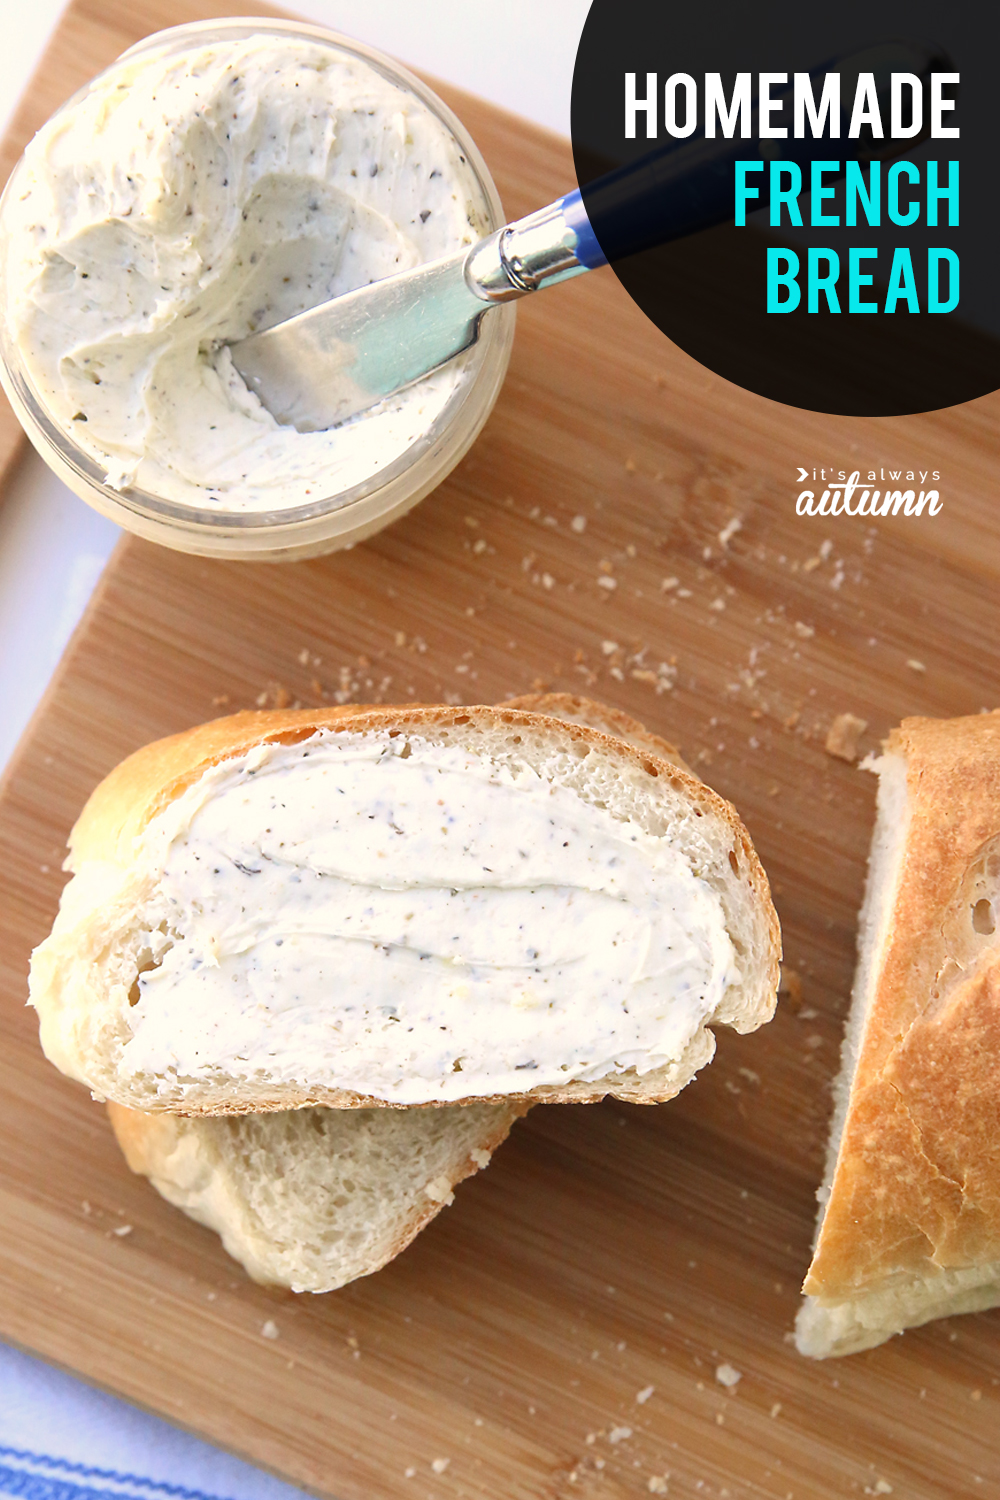 How to make homemade french bread! Click through for an easy french bread recipe you can make at home.